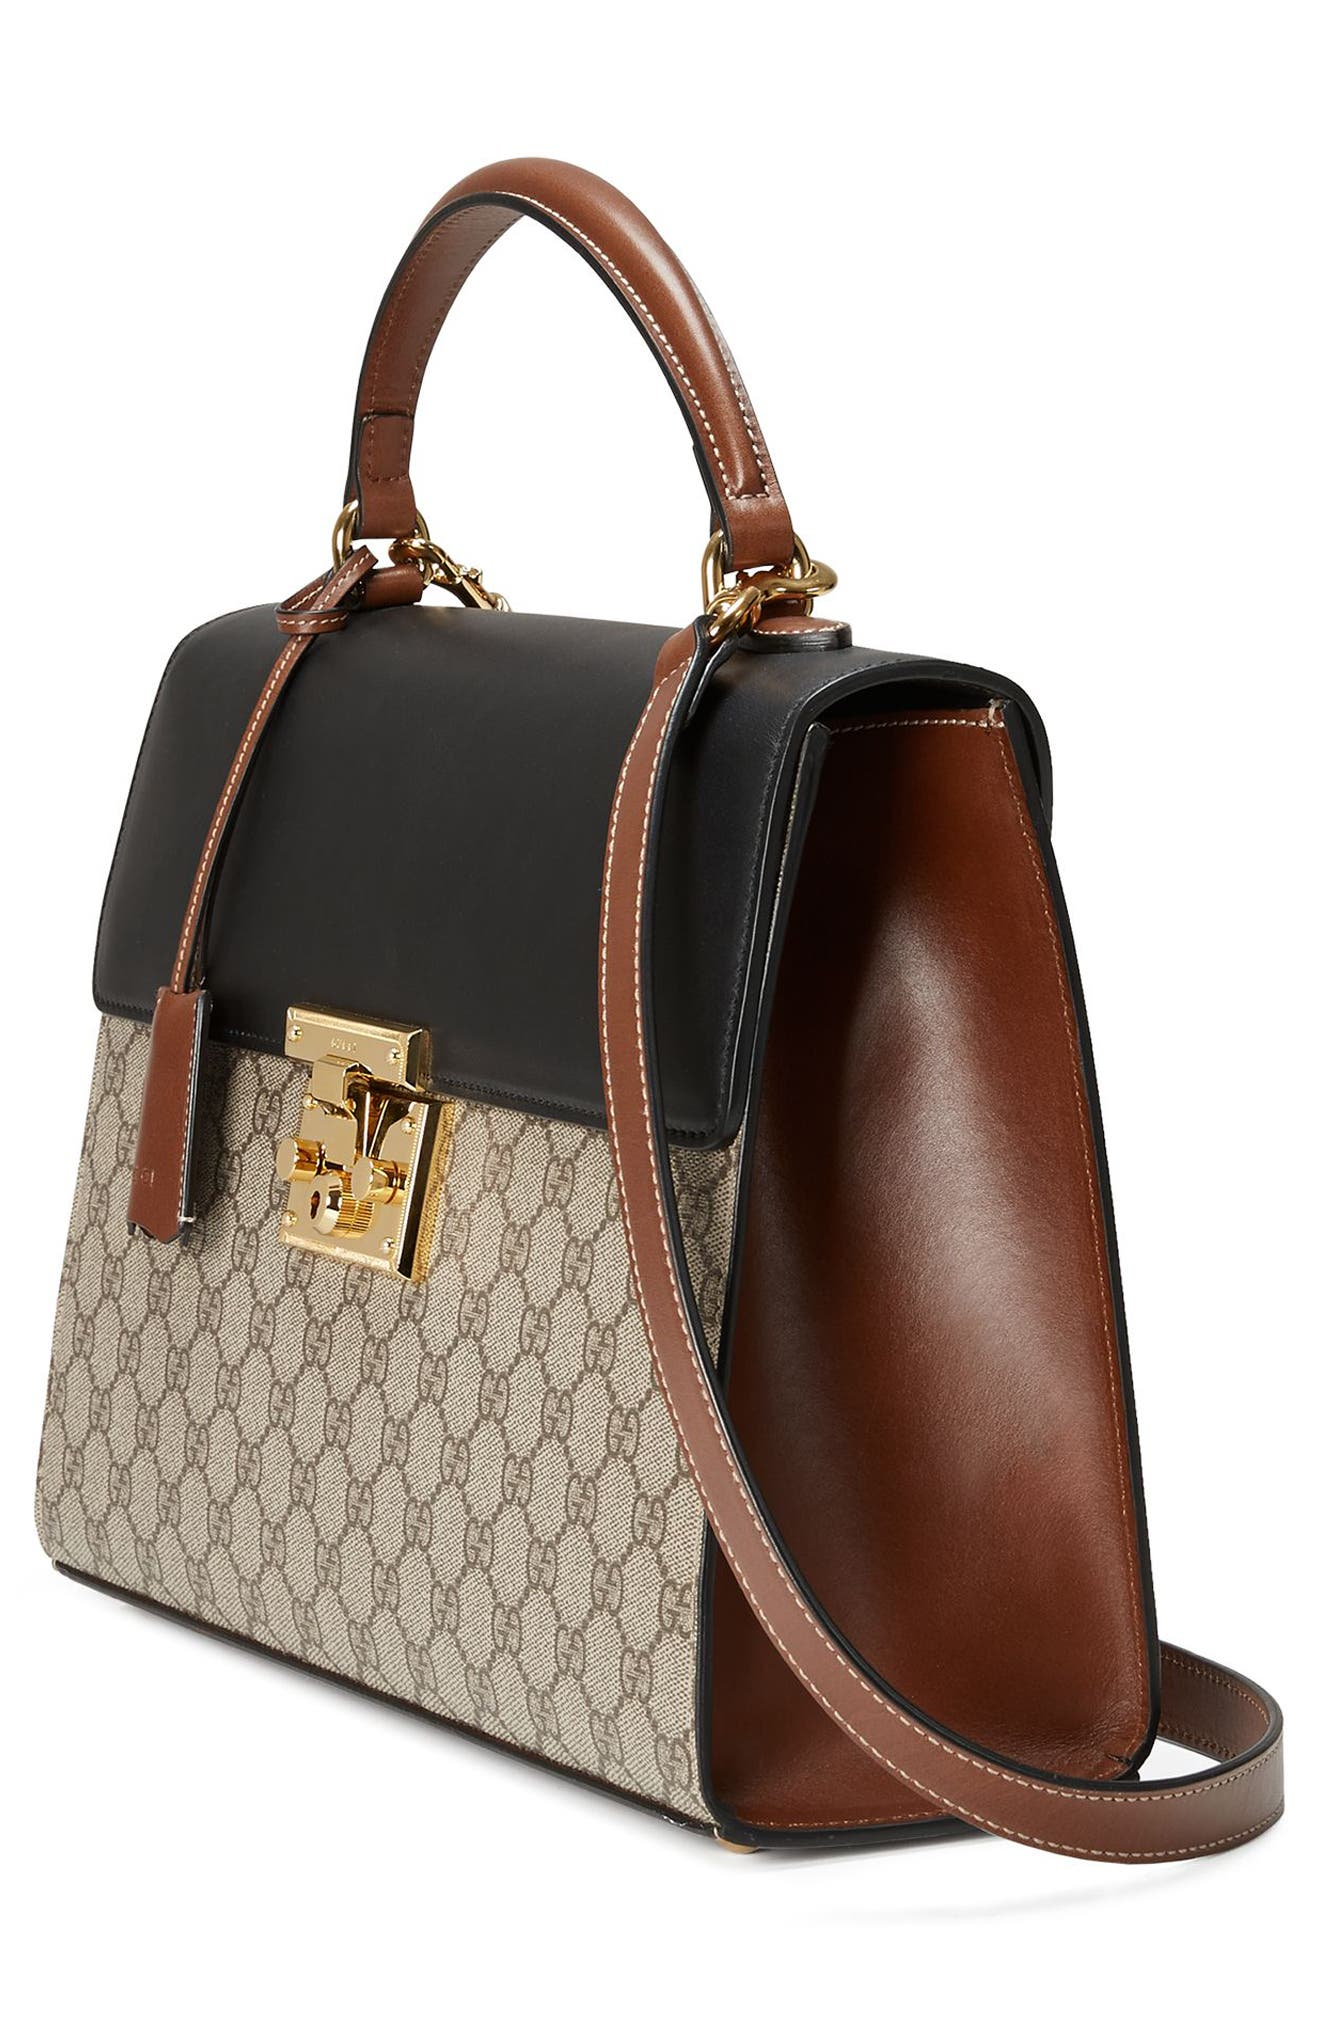 Medium Padlock Top Handle GG Supreme Canvas & Leather Bag,                             Alternate thumbnail 4, color,                             Beige Ebony/Nero/Cuir